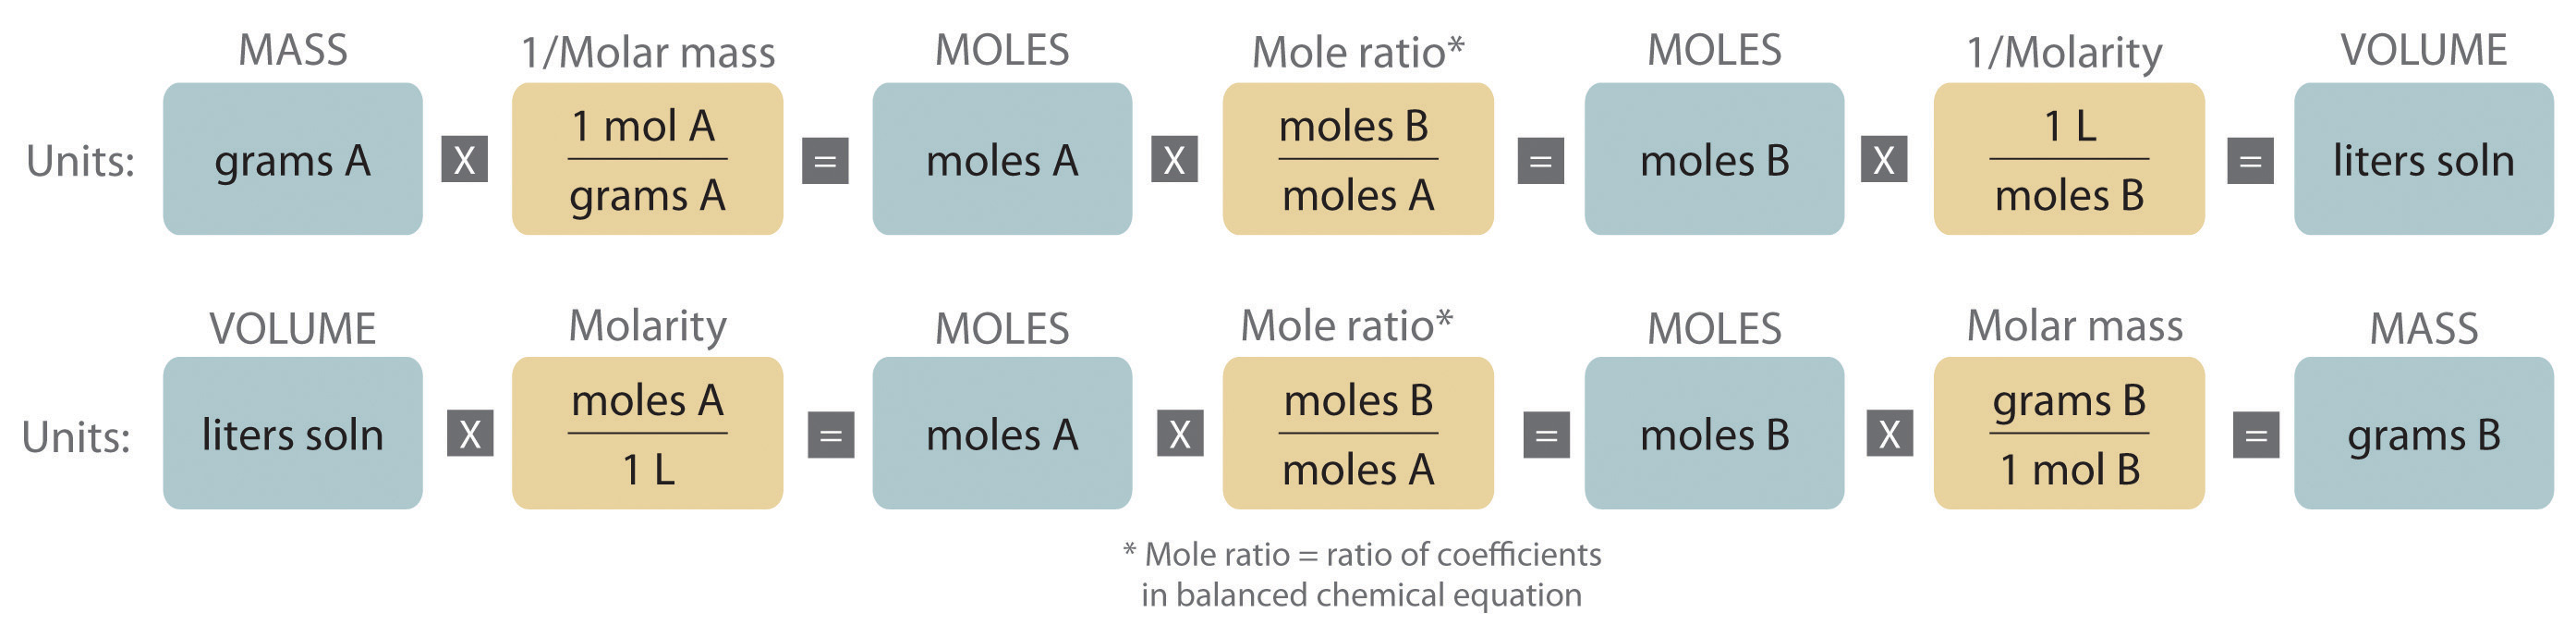 General chemistry principles patterns and applications v10 either the masses or the volumes of solutions of reactants and products can be used to determine the amounts of other species in a balanced chemical nvjuhfo Choice Image